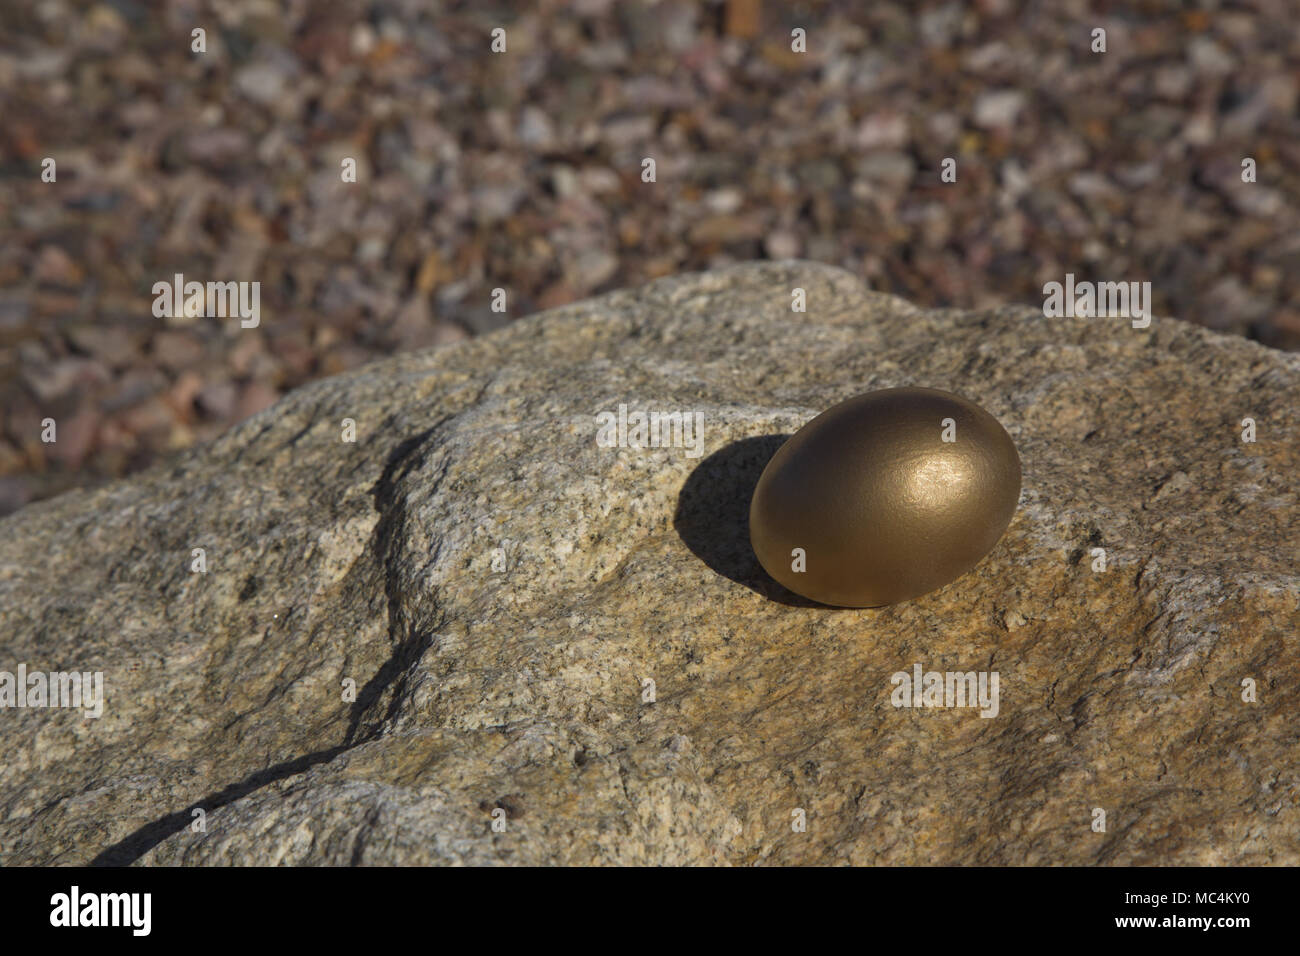 Single gold nest egg placed on hard rock is conceptual image of  investments endangered in a challenging economic environment.  Risk reflects need to  - Stock Image